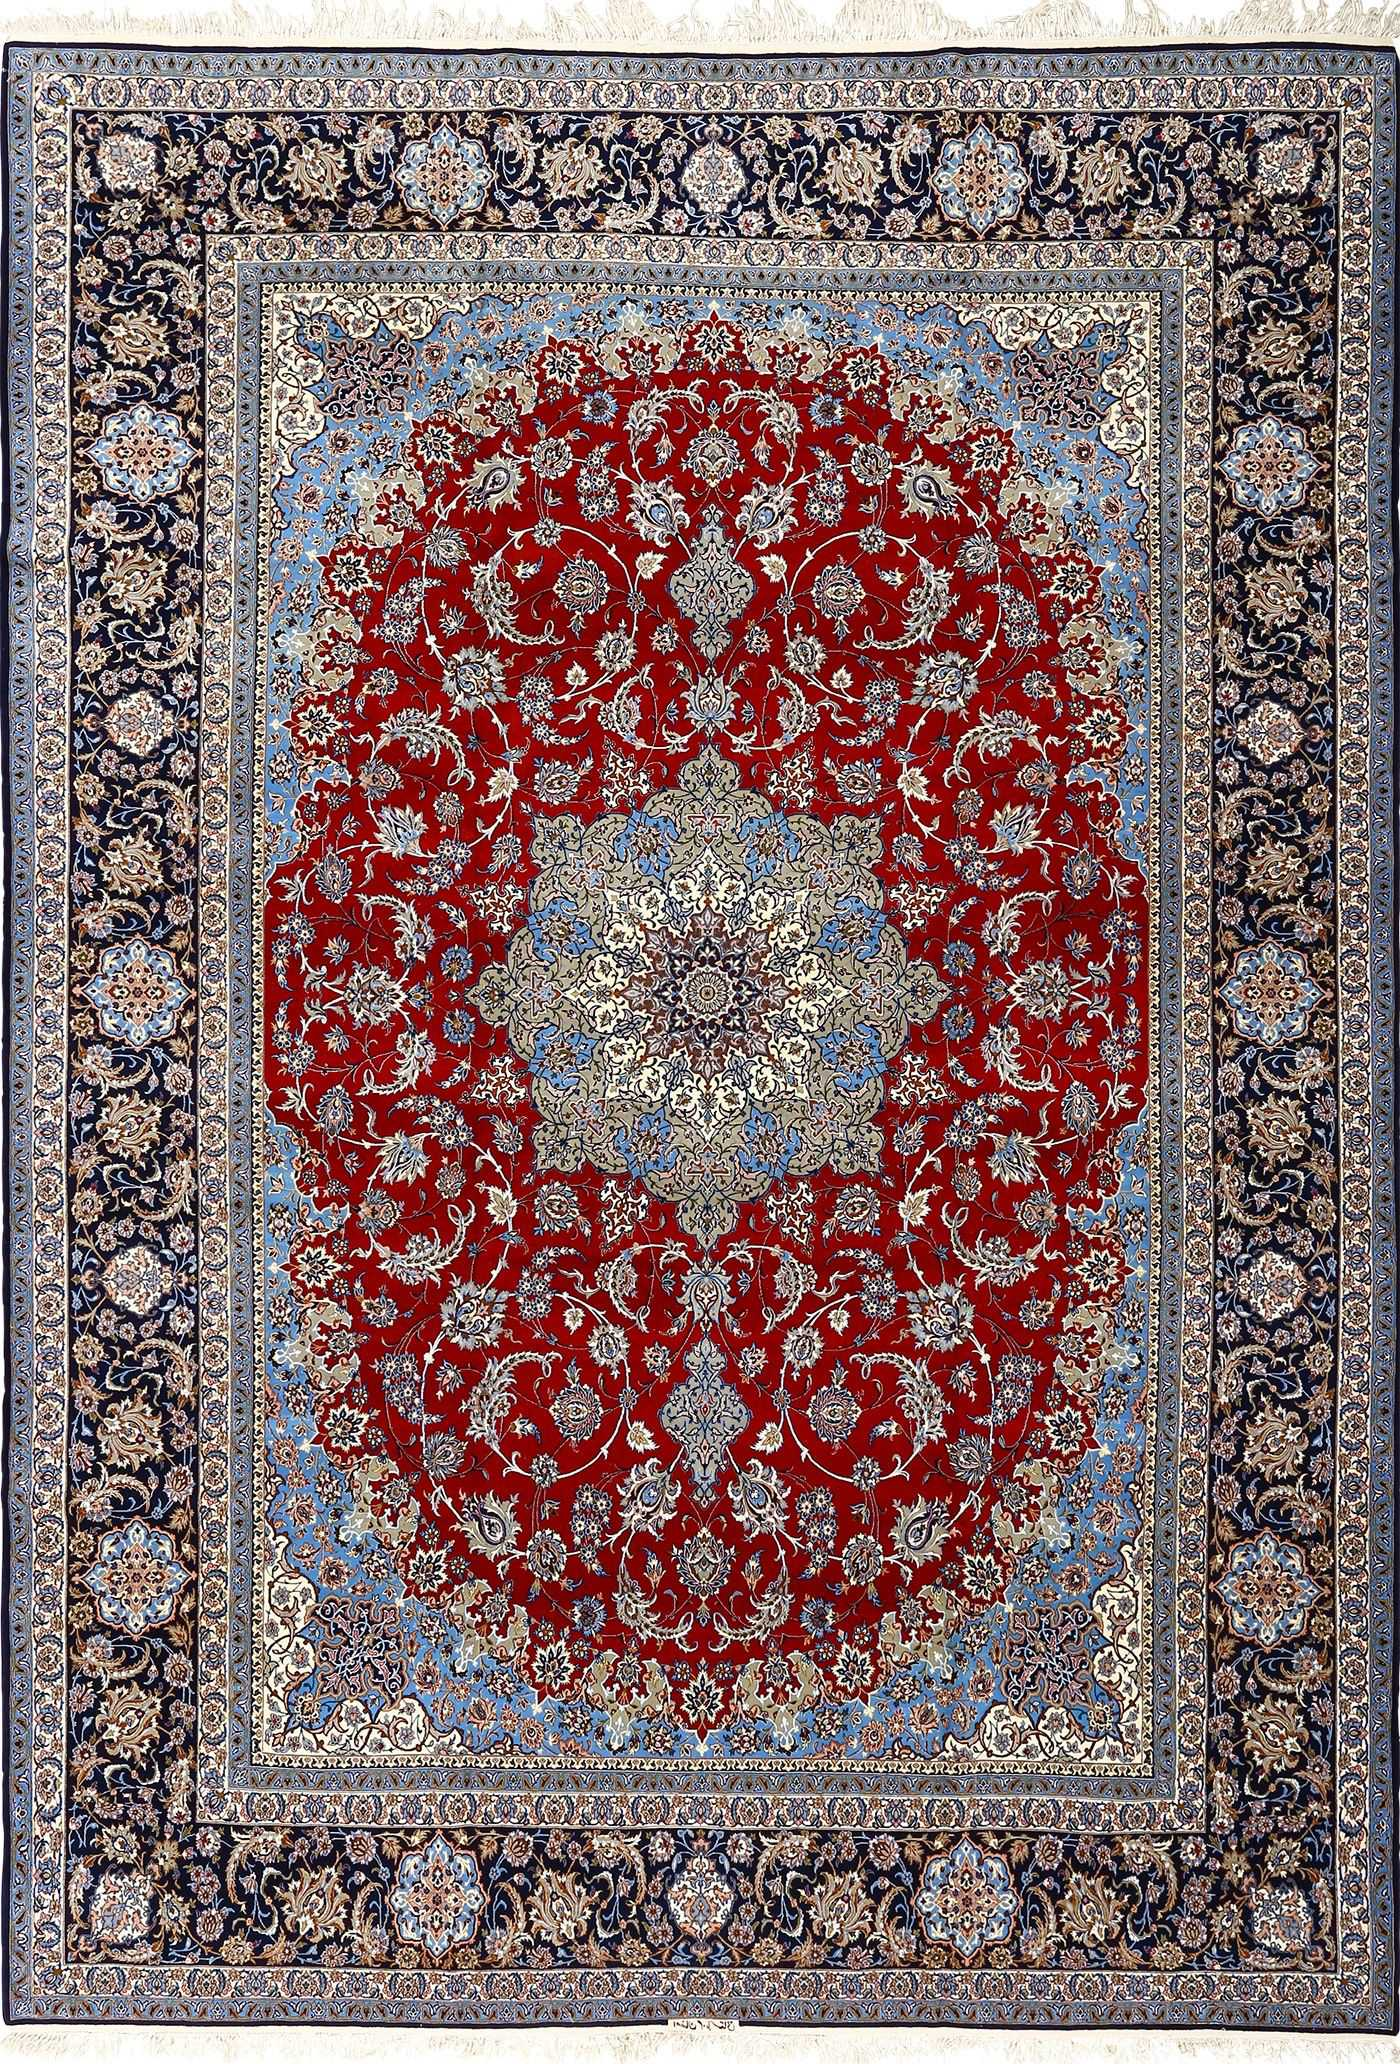 Red Oriental Rug Beautiful Vintage Isfahan Persian Rug 51090 By Nazmiyal